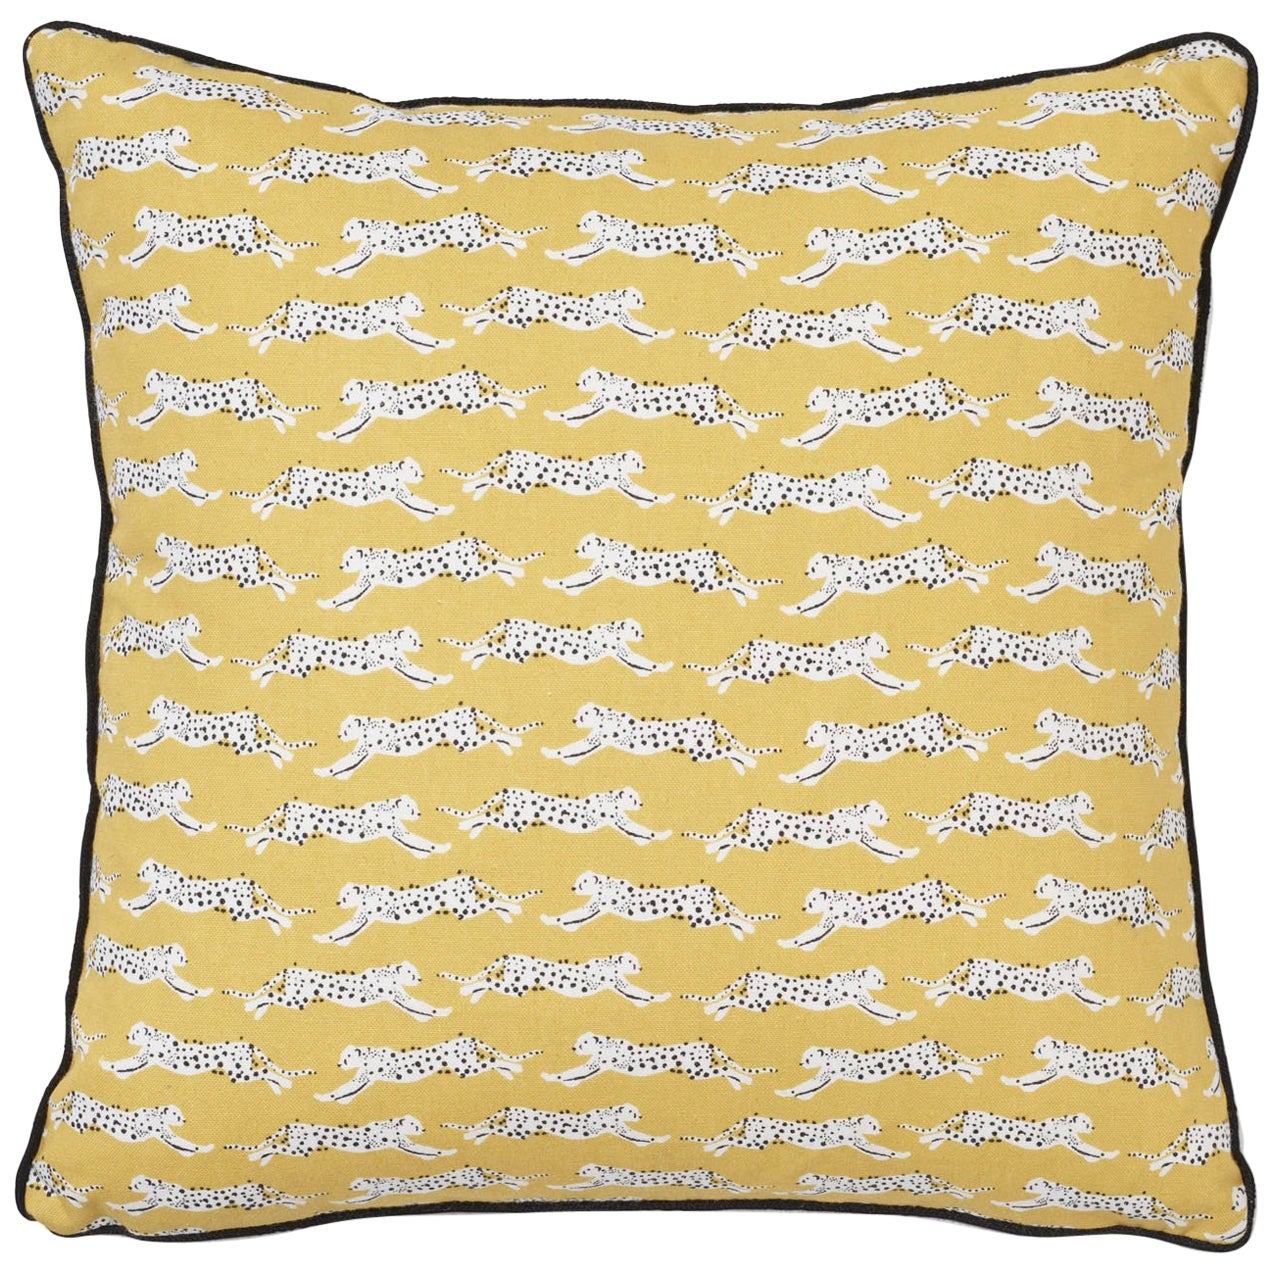 Schumacher Leaping Leopards Yellow Two-Sided Cotton Pillow